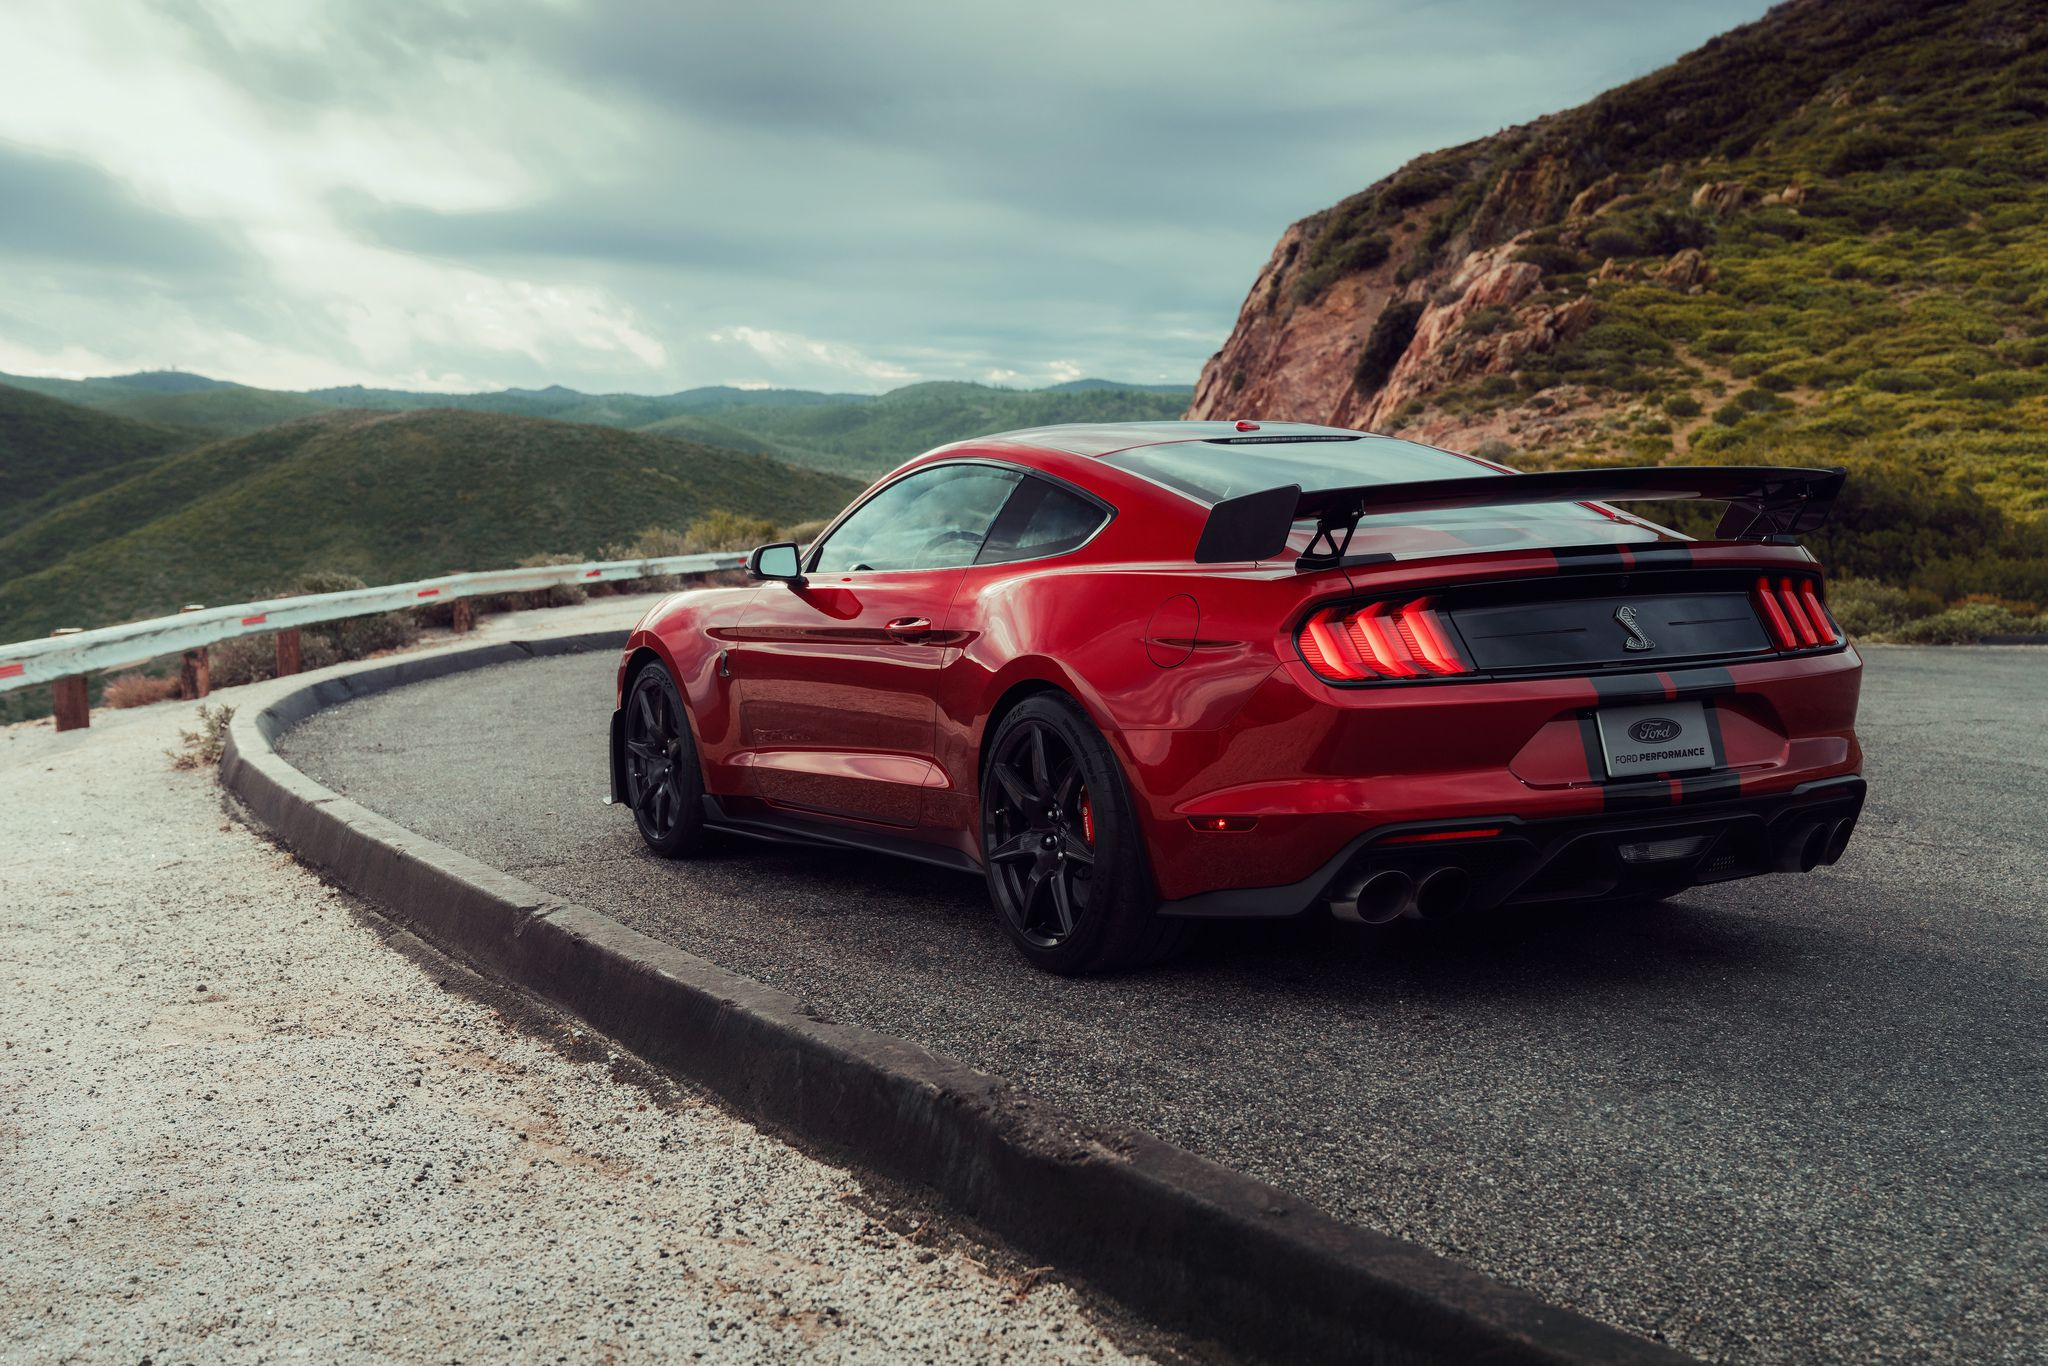 2020 Ford Mustang Shelby GT500 - at beautiful mountains background